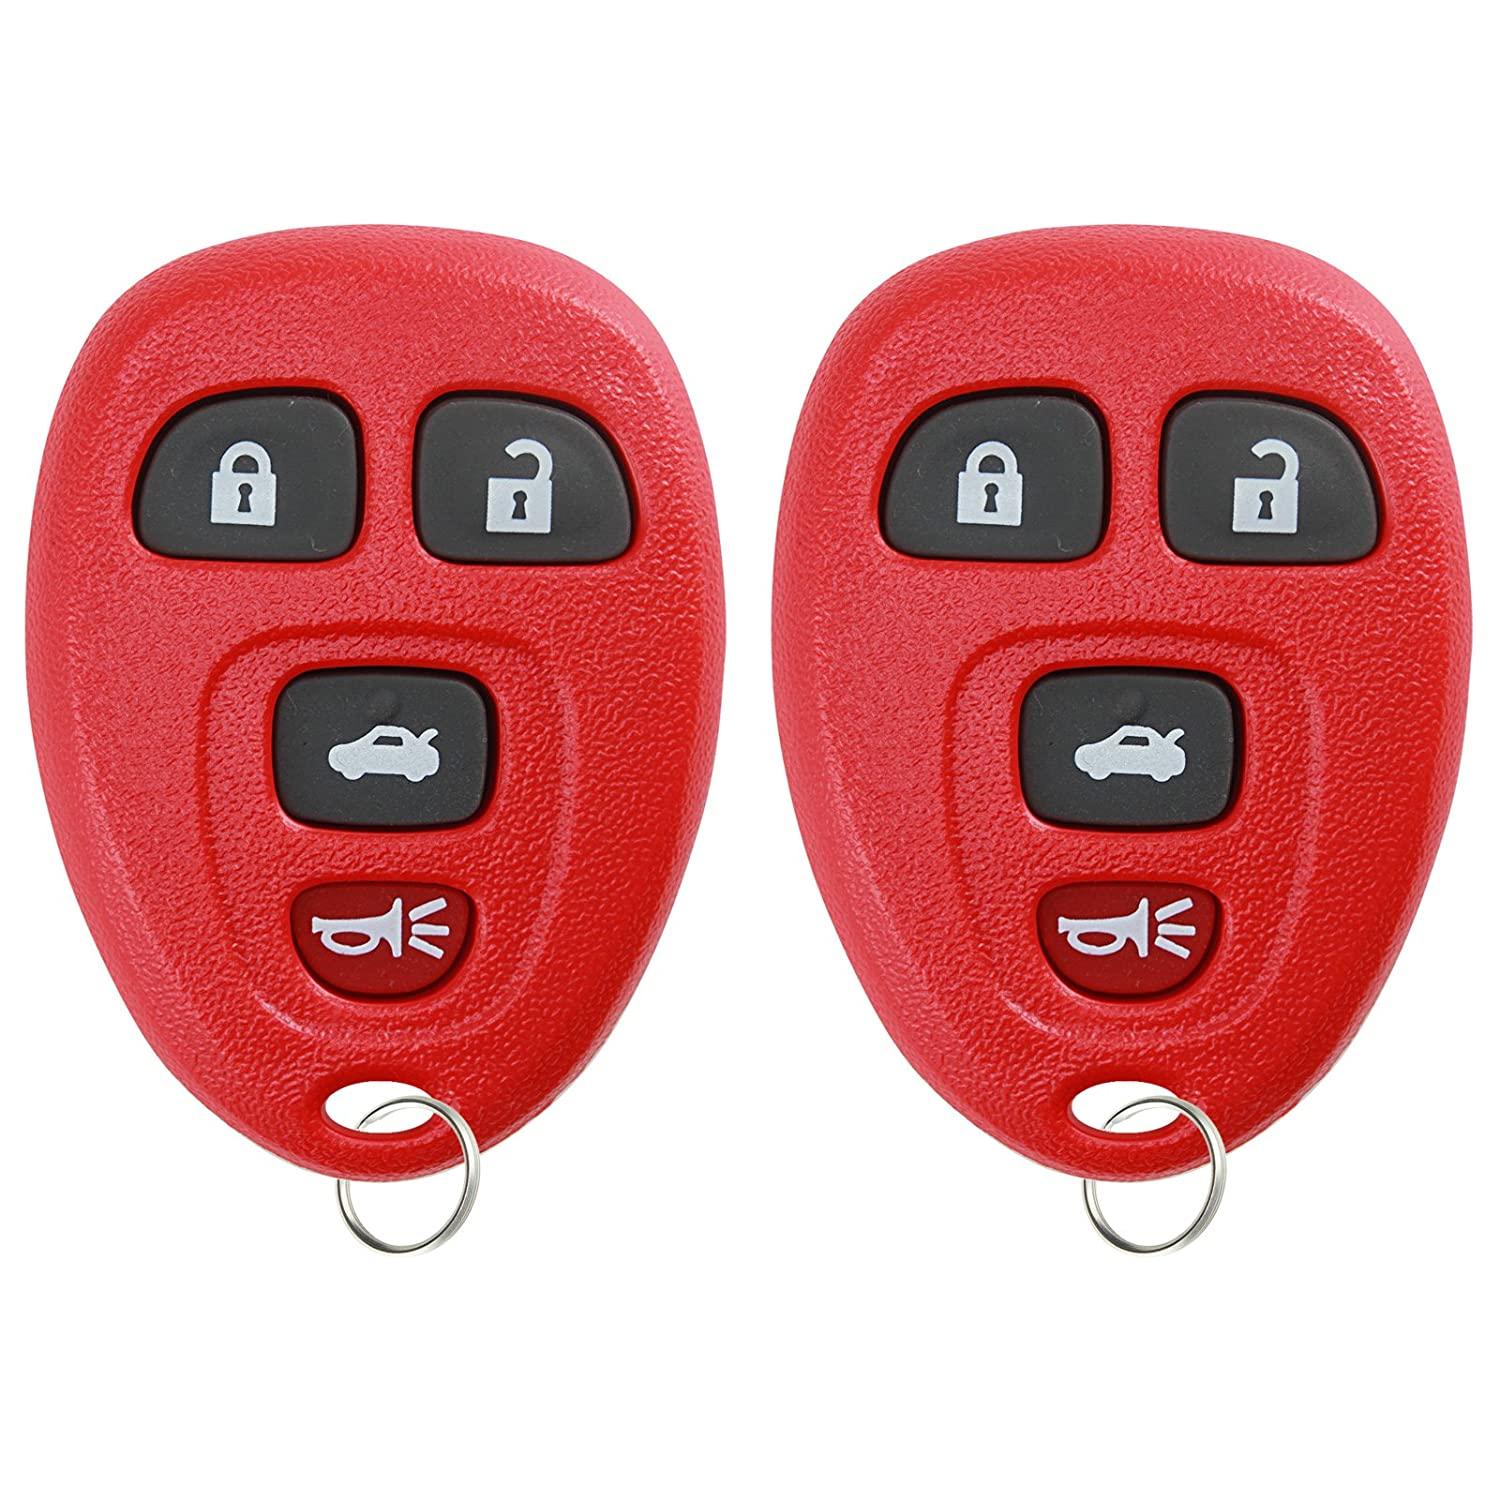 KeylessOption Keyless Entry Remote Control Car Key Fob Replacement for 15252034 (Pack of 2) KPT2321